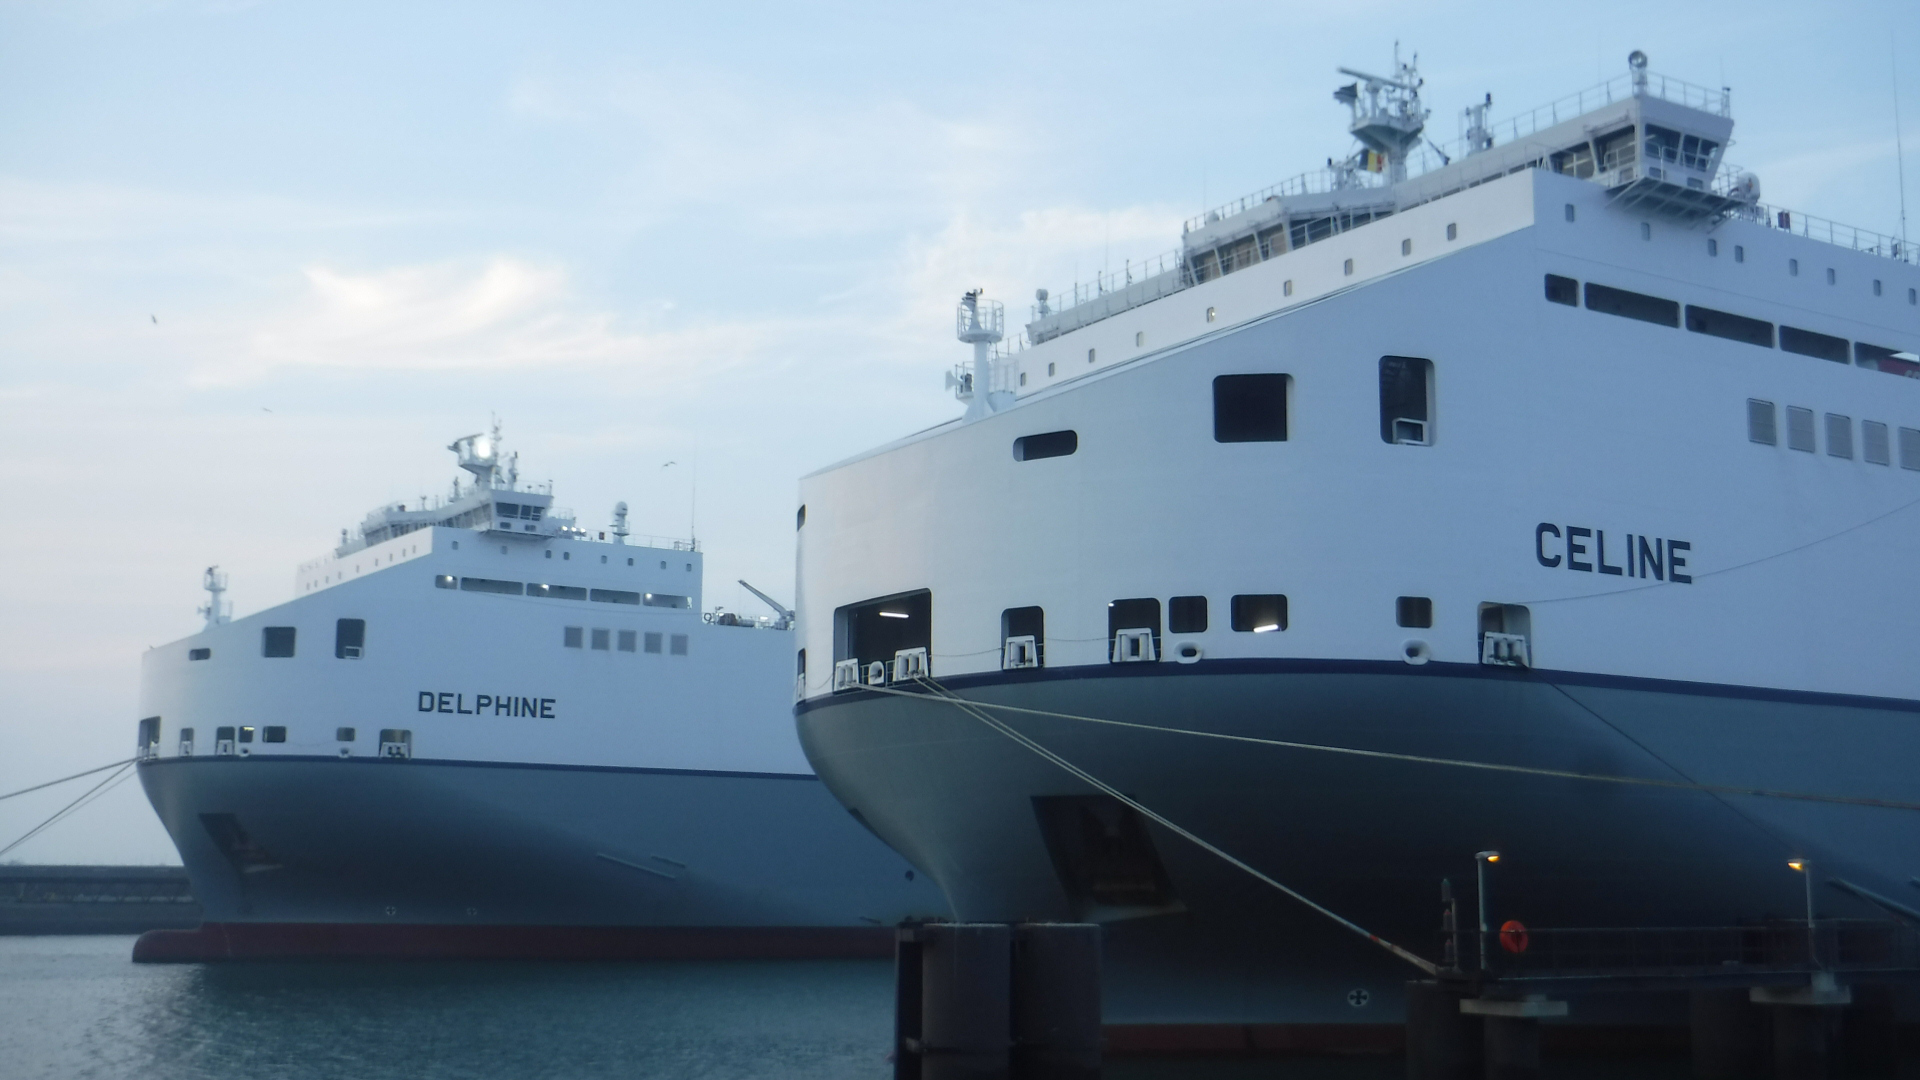 Celine and Delphine, the two biggest shortsea ro-ro vessels in the world